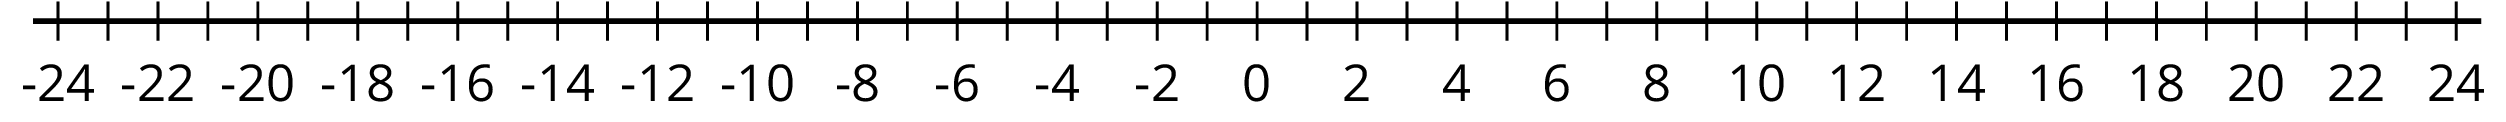 A blank number line. The numbers negative 24 through 24, in increments of two, are indicated. There are tick marks midway between.